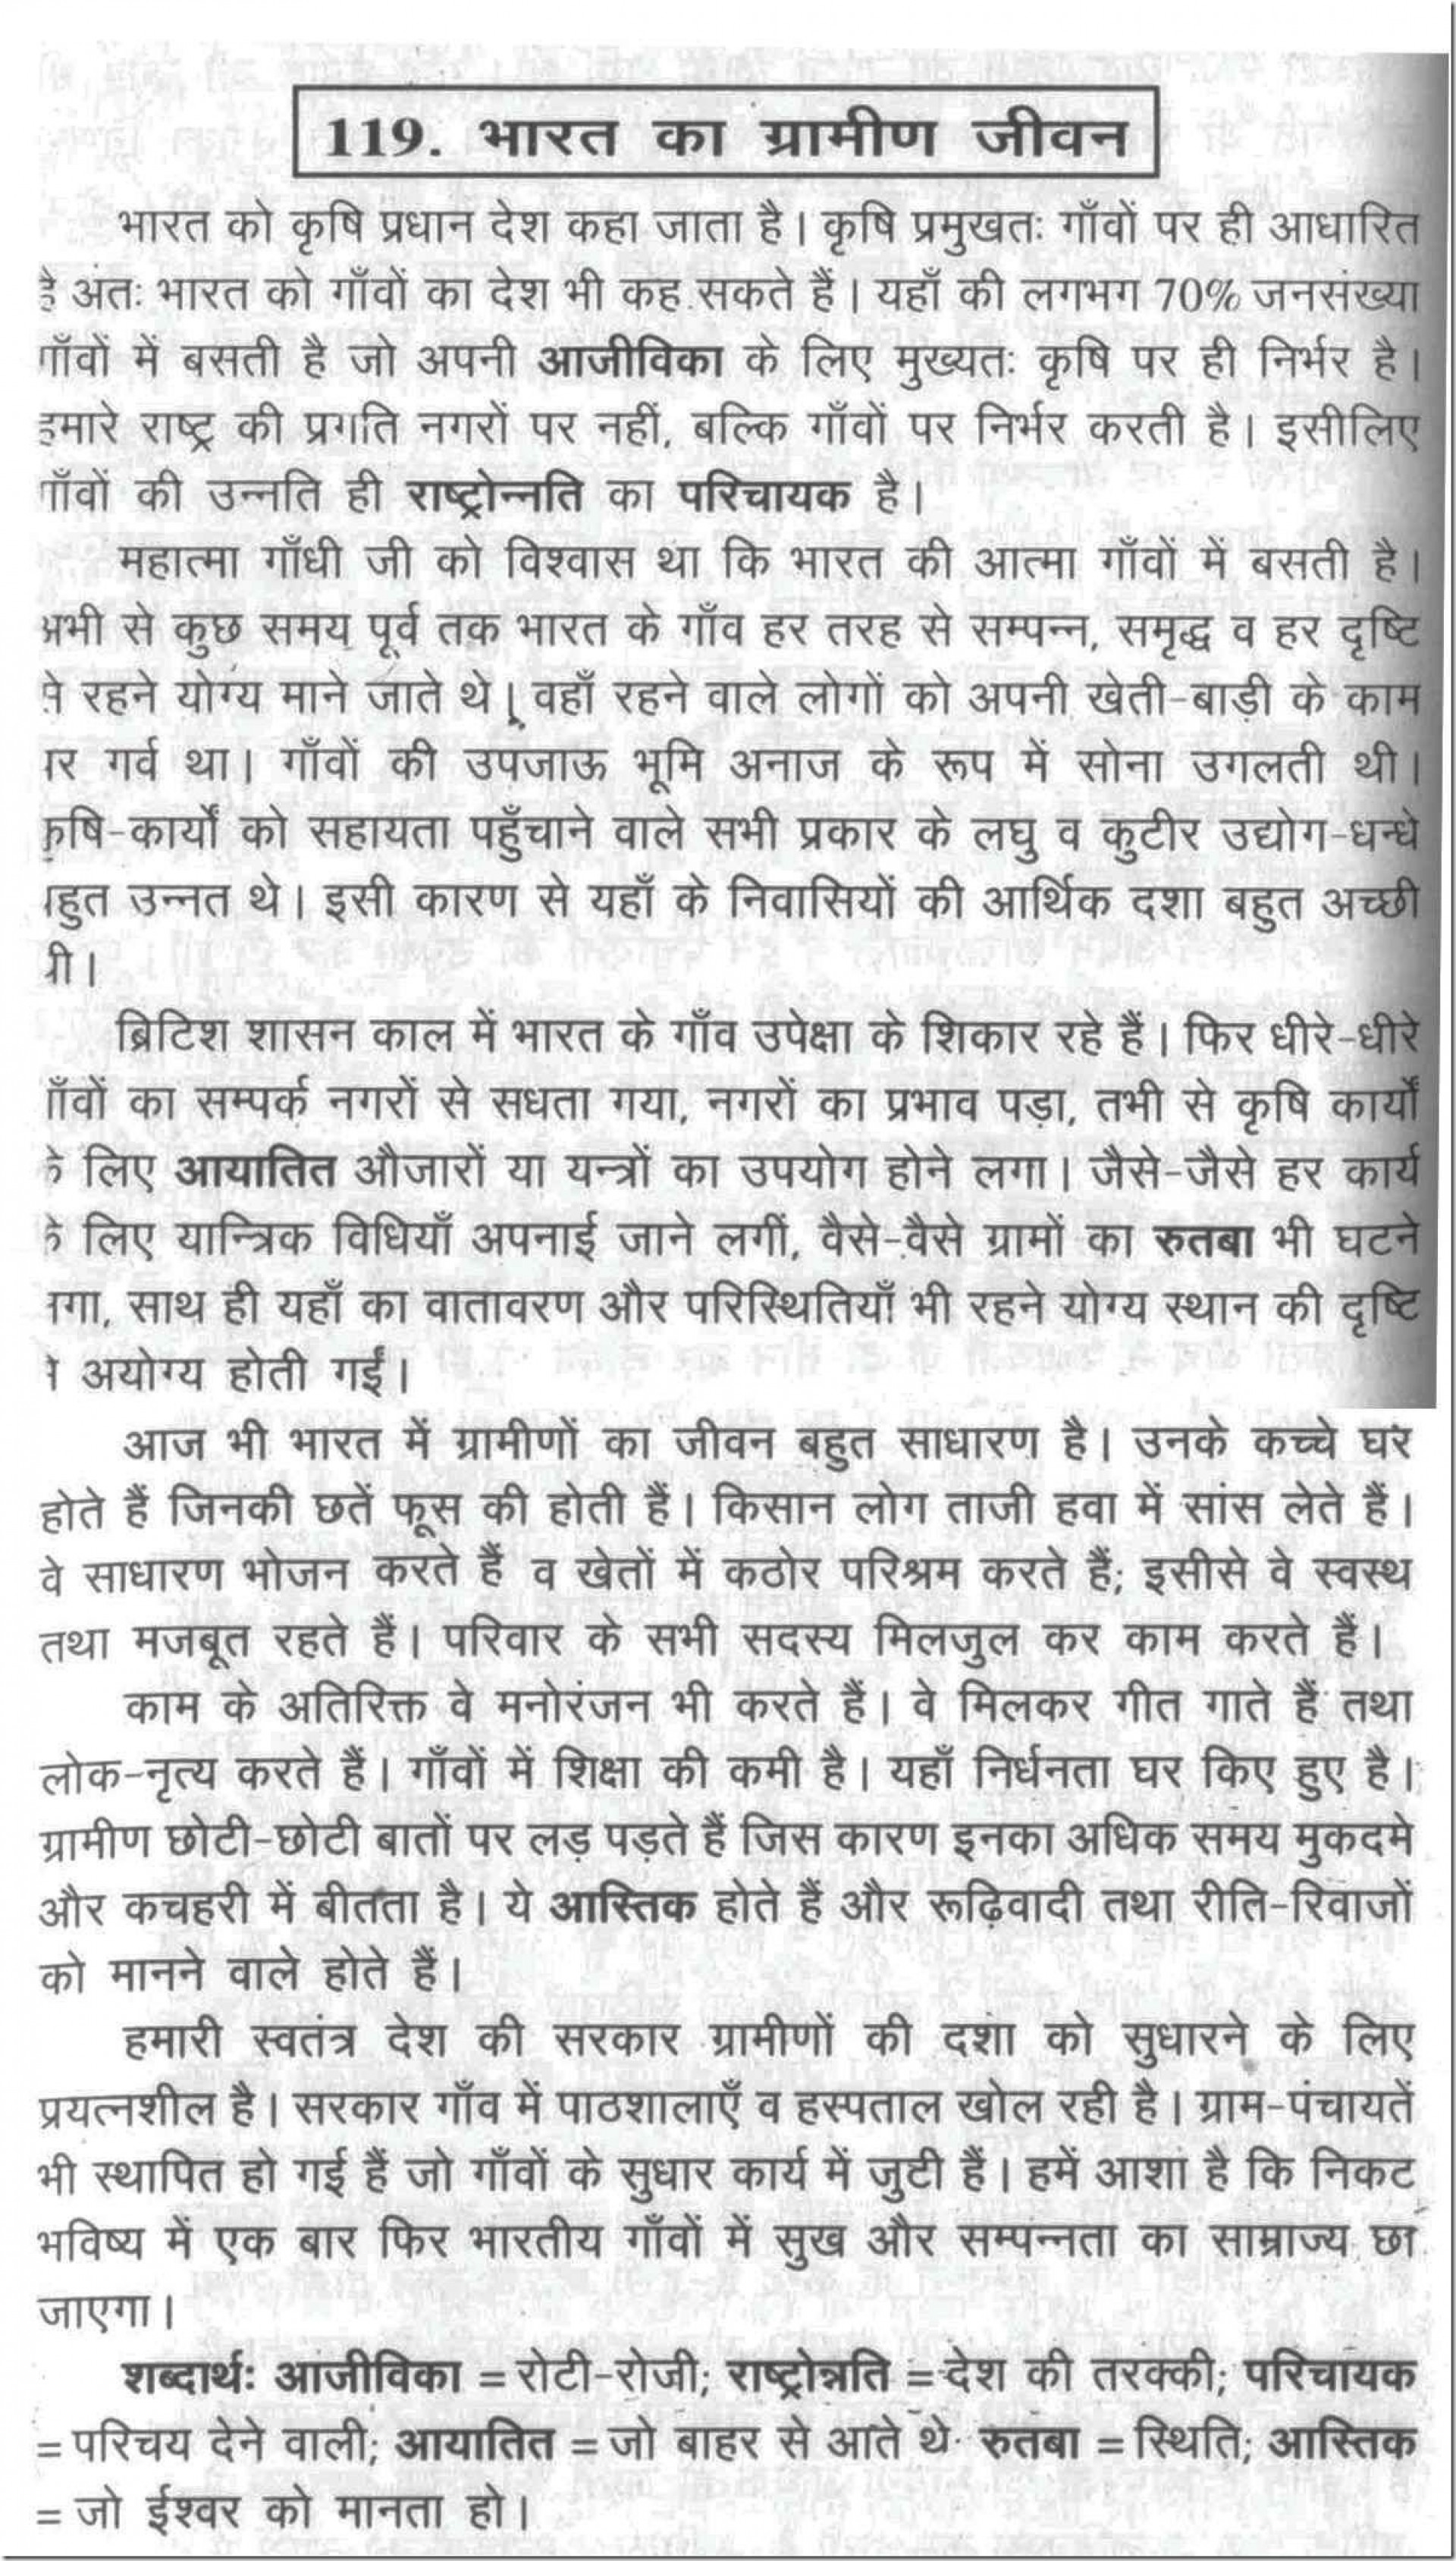 012 My Country Essay In Hindi Example 100119 Thumb Phenomenal 10 Lines Is Great 1920